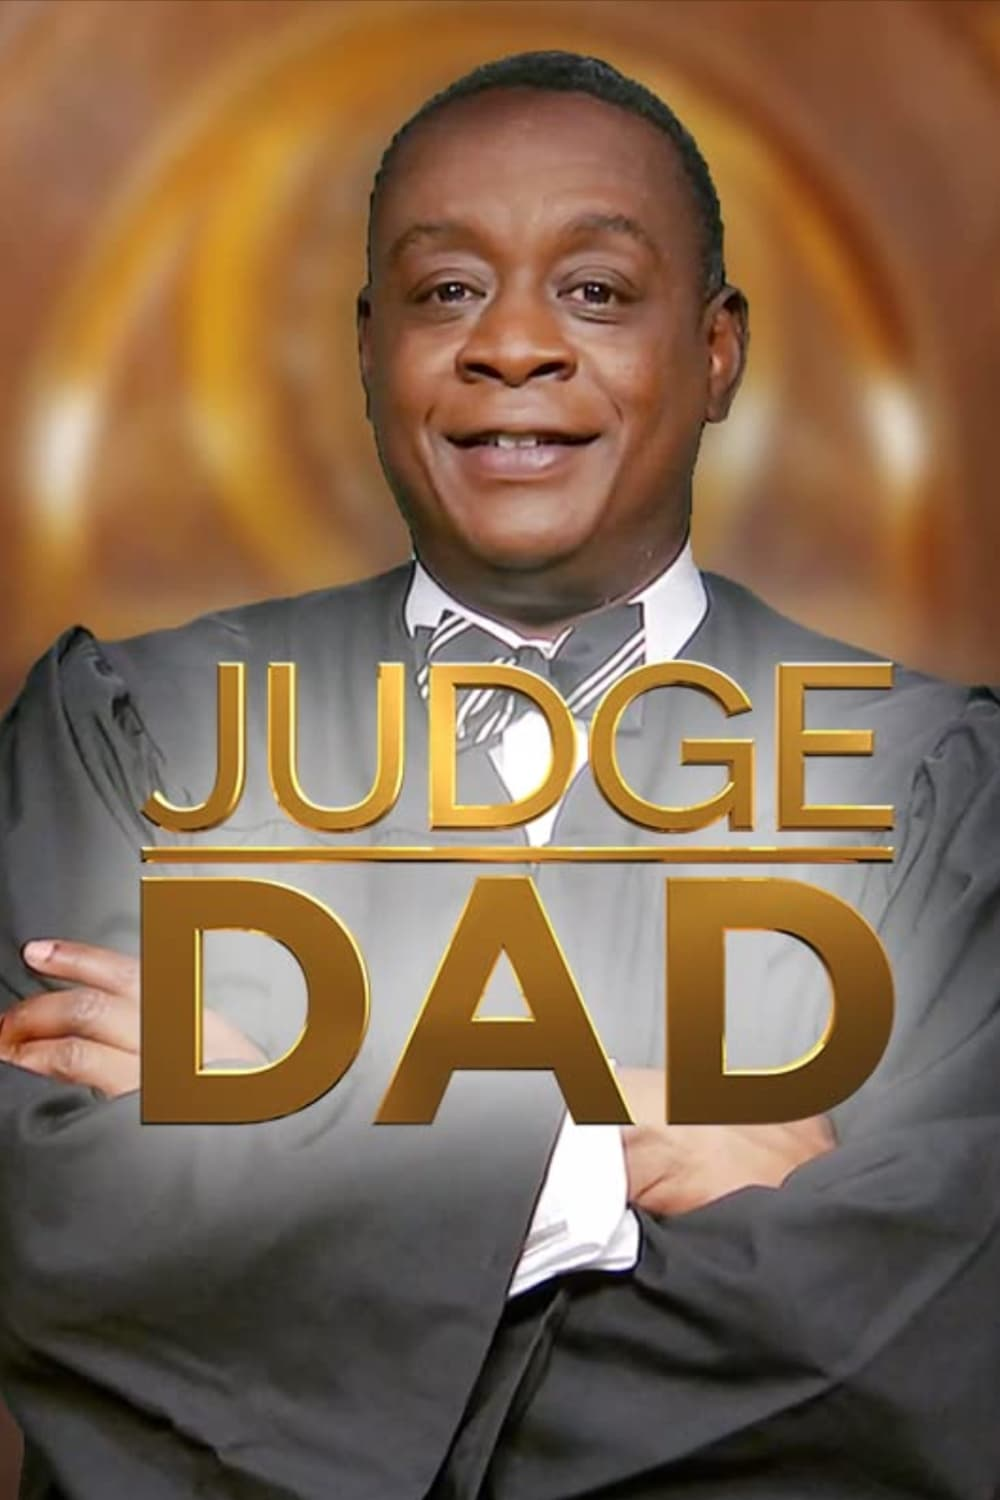 Judge Dad on FREECABLE TV